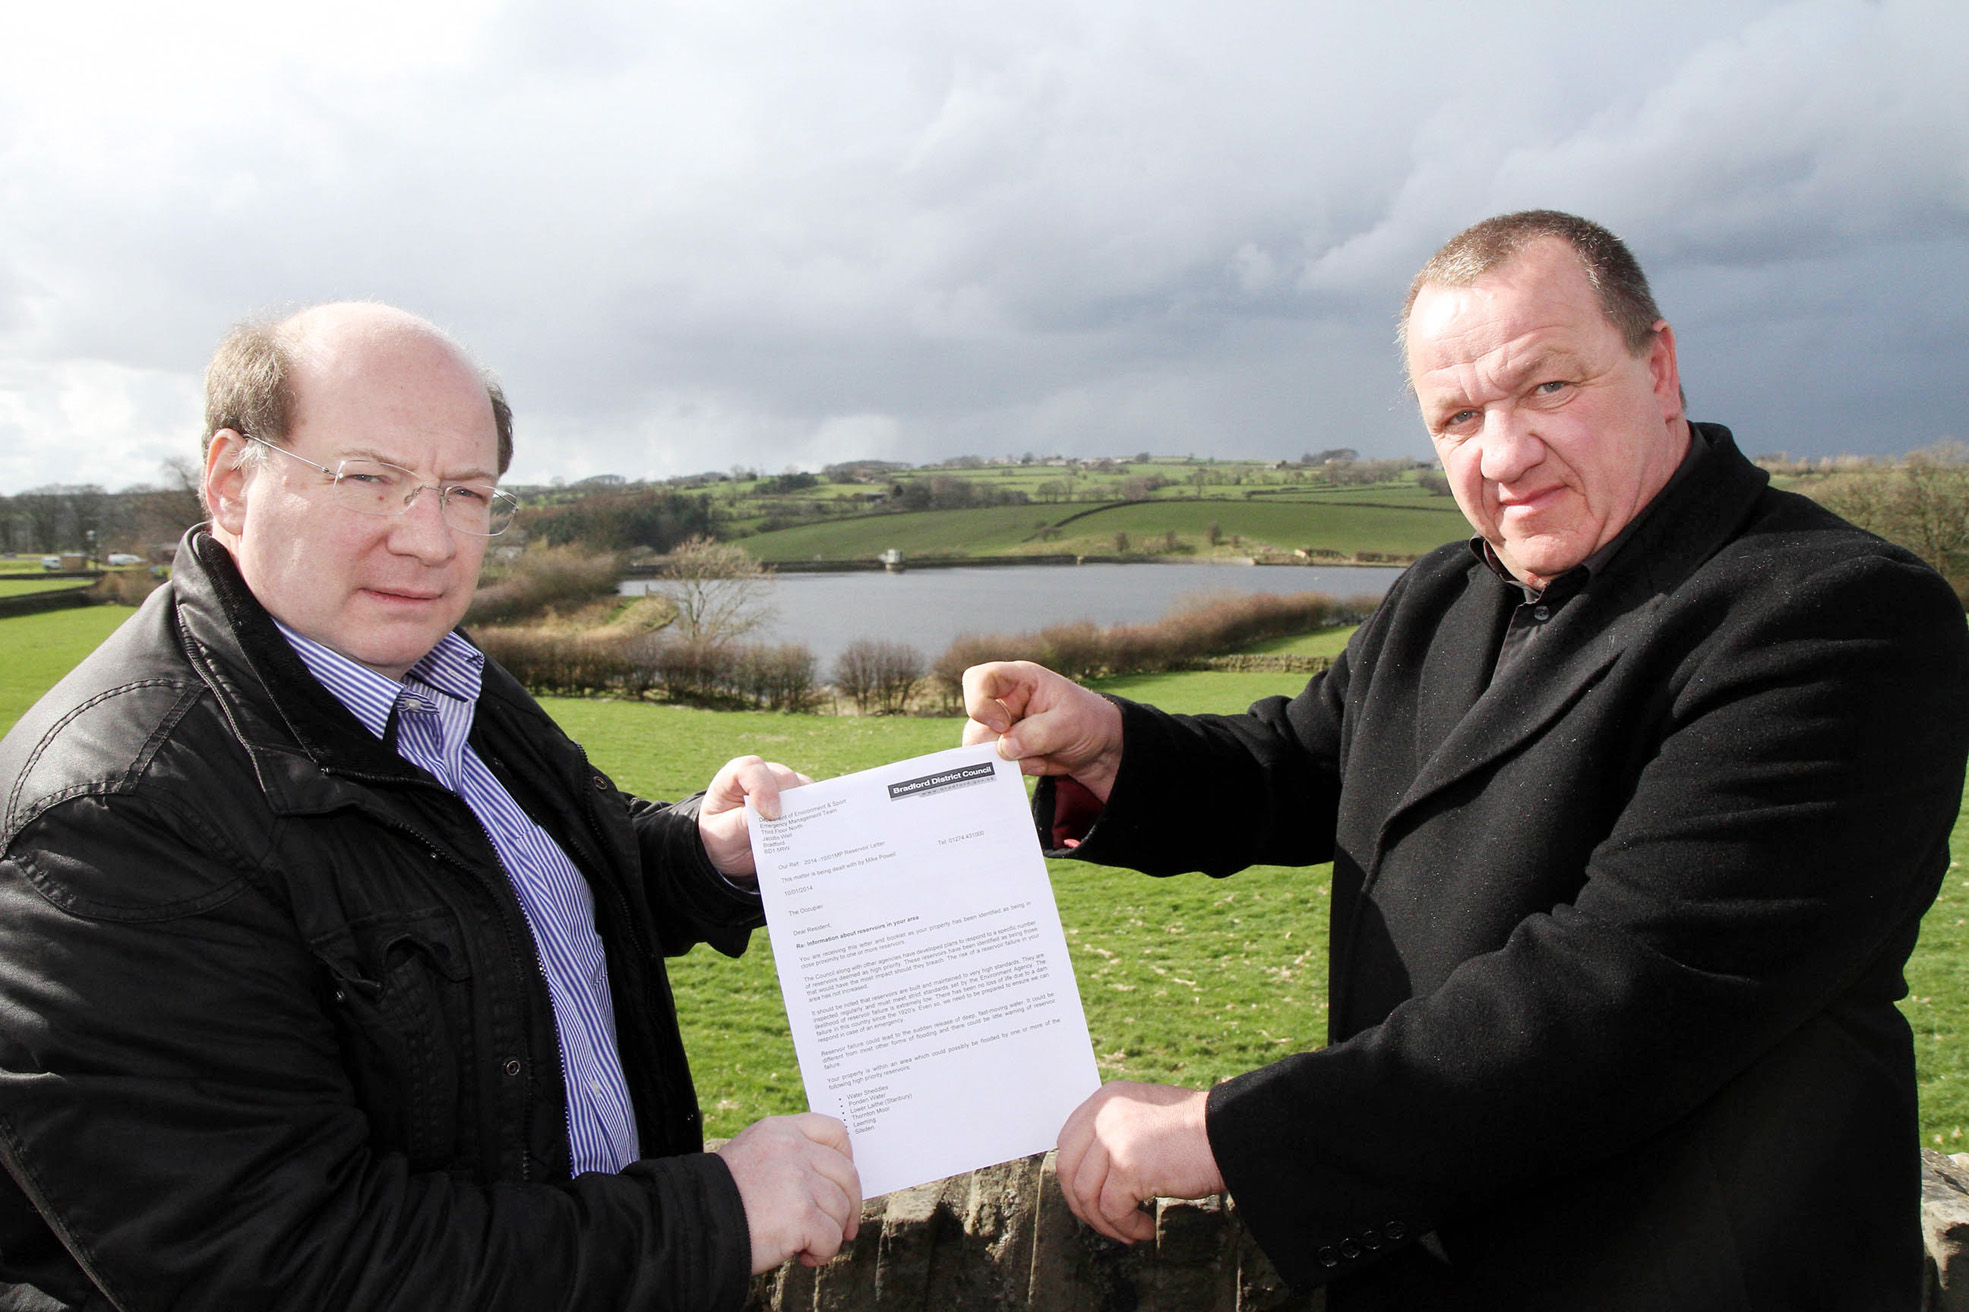 FLOOD RISK: Bradford councillor Adrian Naylor, left, and Silsden mayor Councillor Chris Atkinson, with the letter warning of the risk of flooding in the event of a reservoir dam collapse